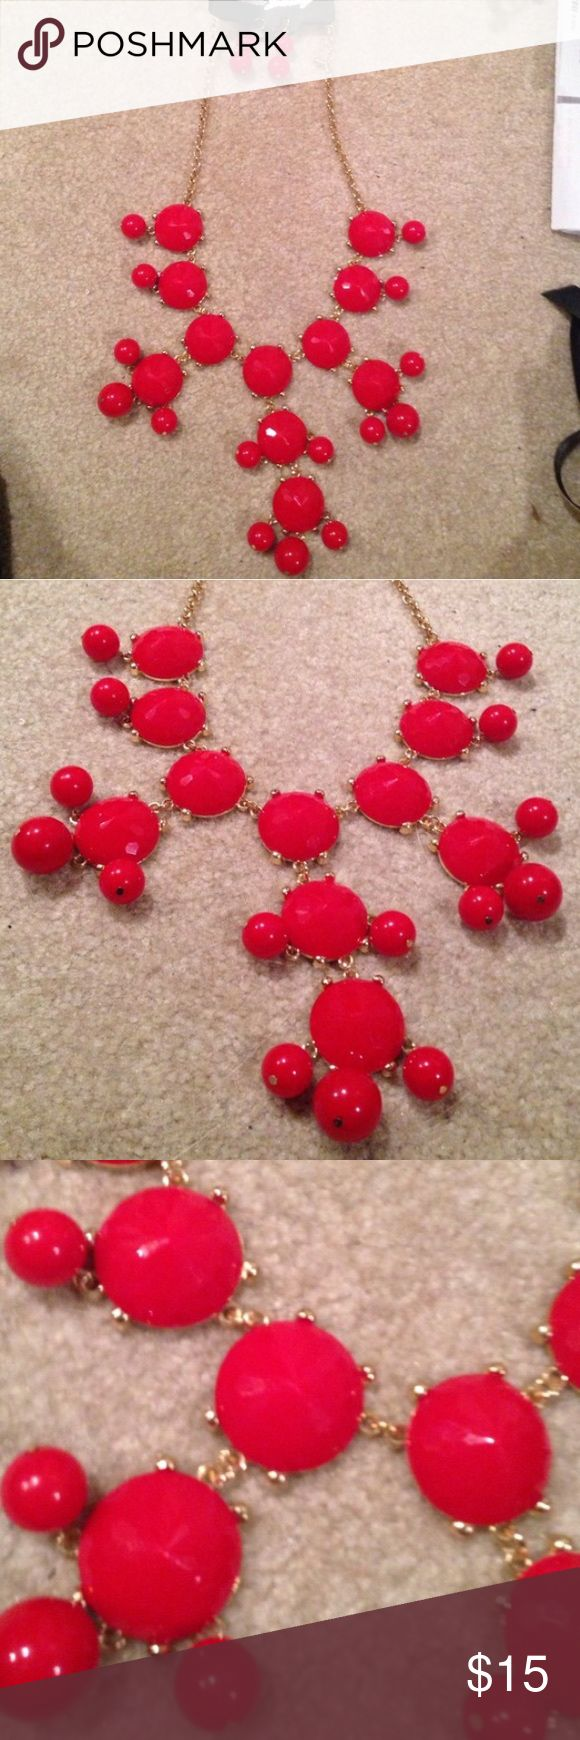 NWT Red Bubble Necklace with Matching Earrings NWT Red Bubble Necklace with Matching Earrings FASHION JEWELRY Jewelry Necklaces